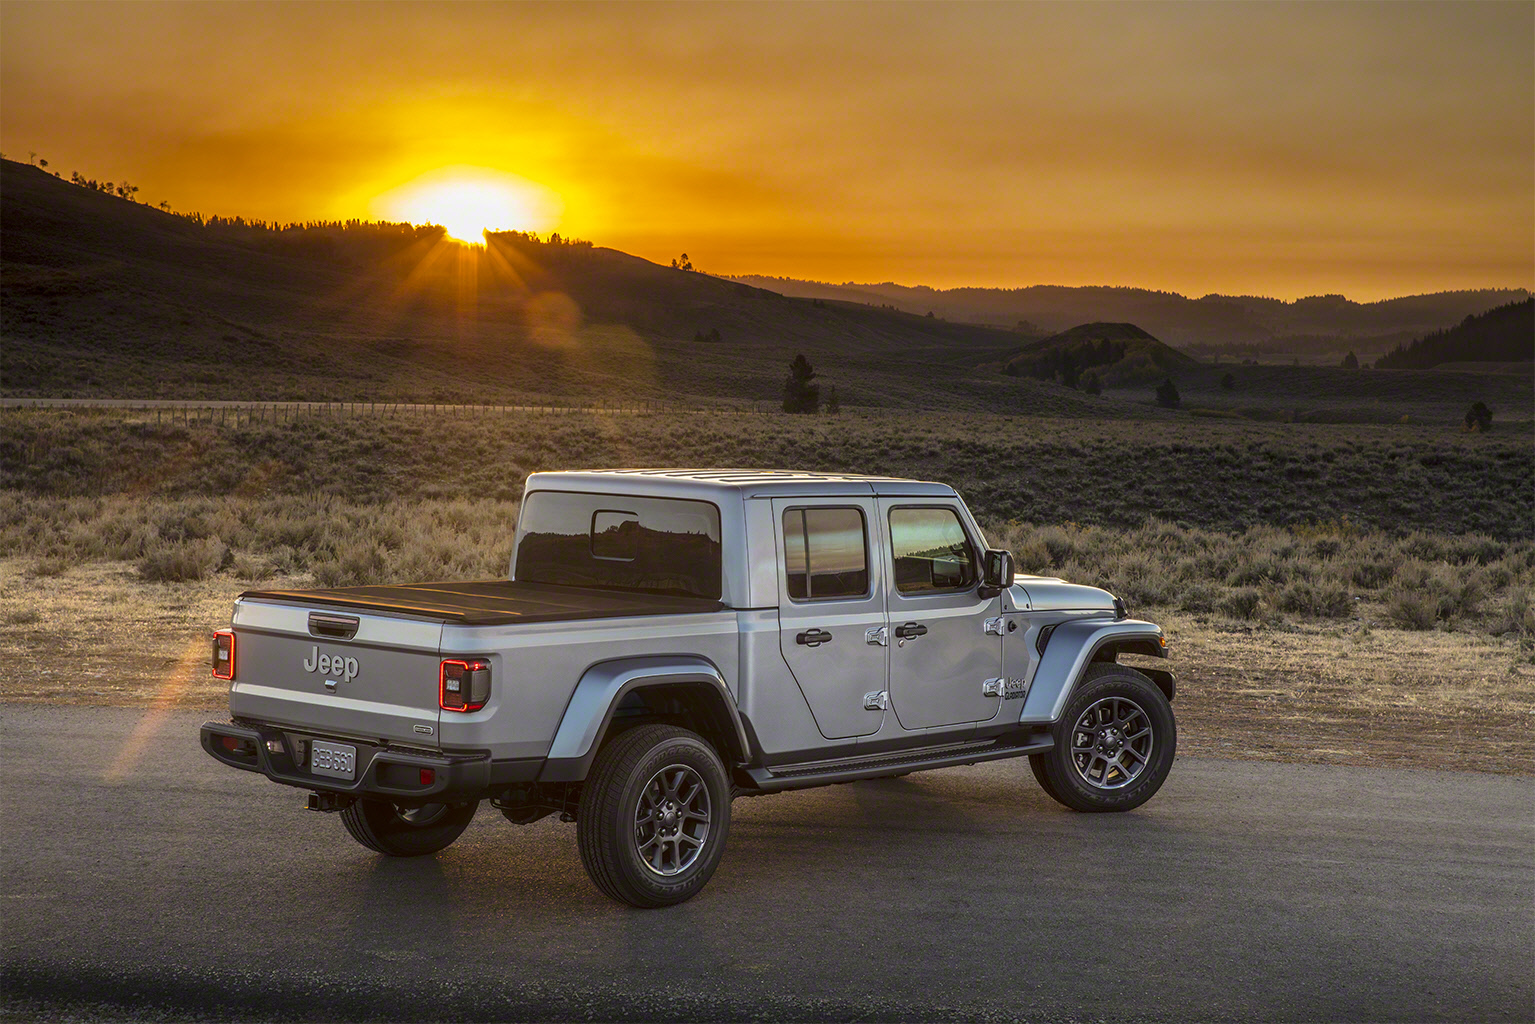 Jeep® Gladiator: The Most Capable Midsize Truck Ever